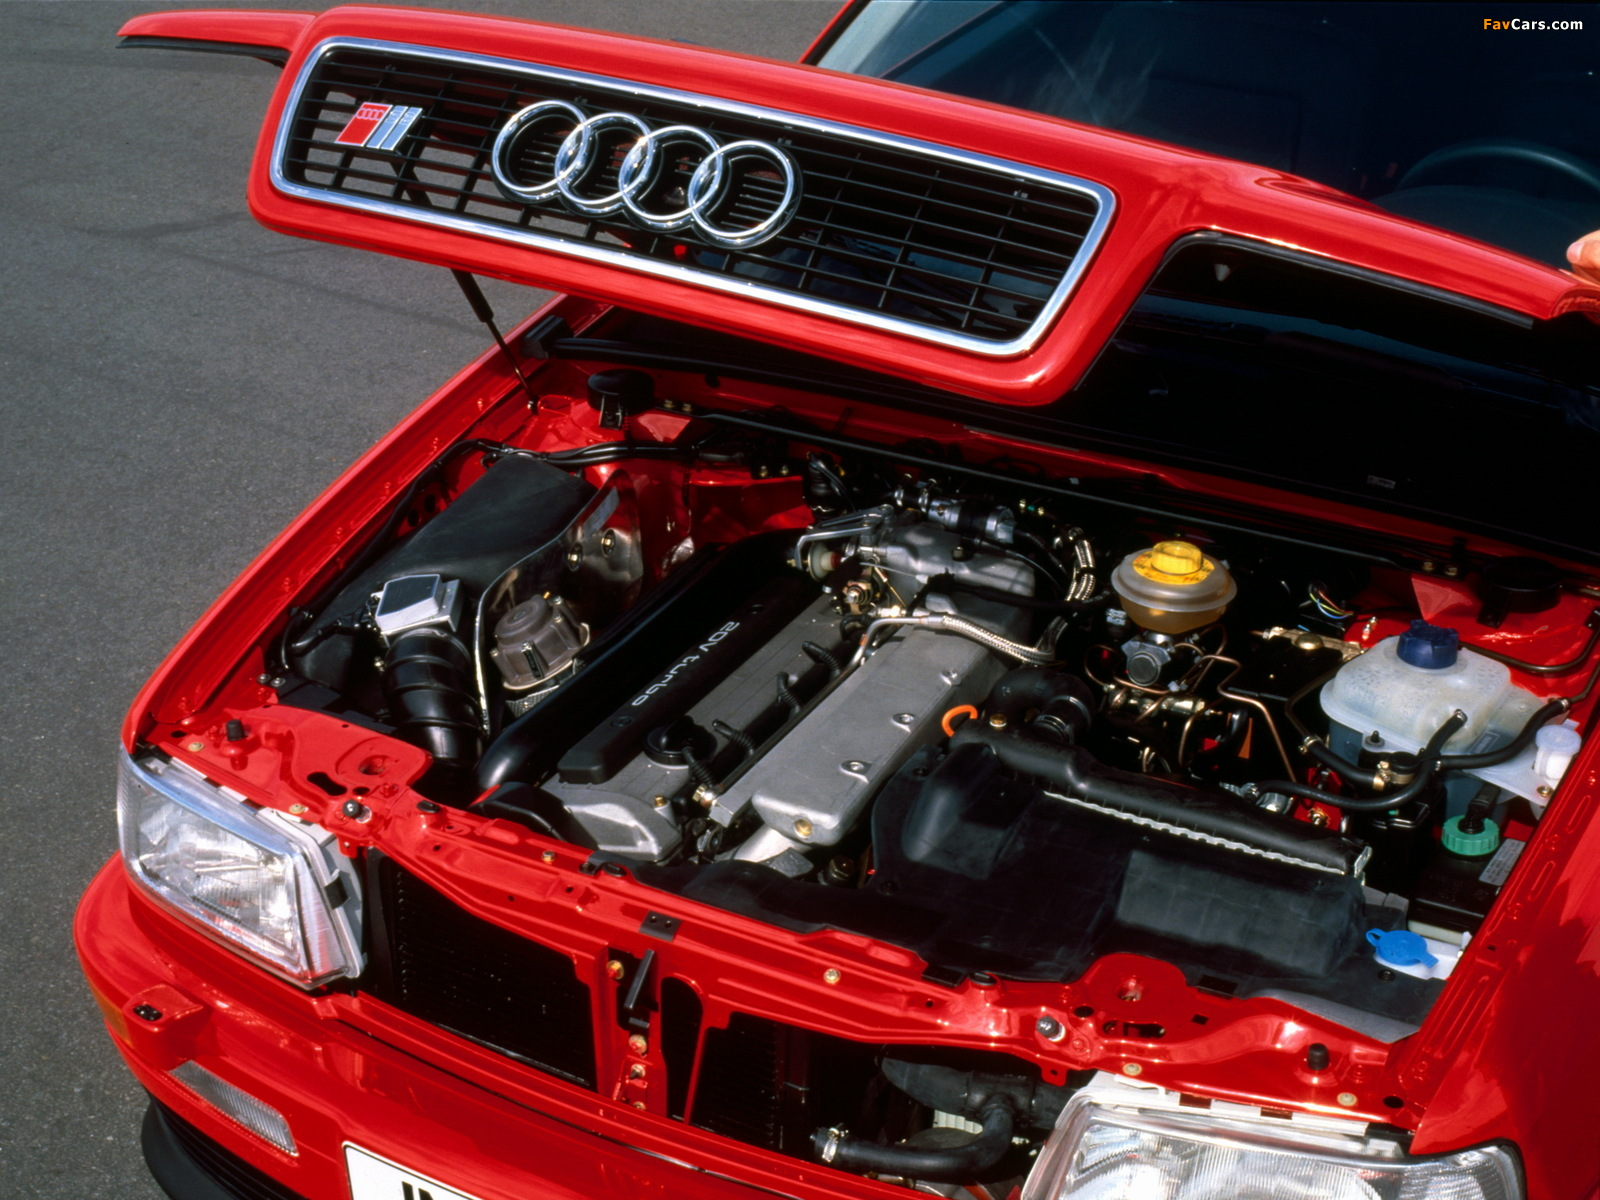 Pictures Of Audi S2 Coupe 89 8b 1990 96 1600x1200